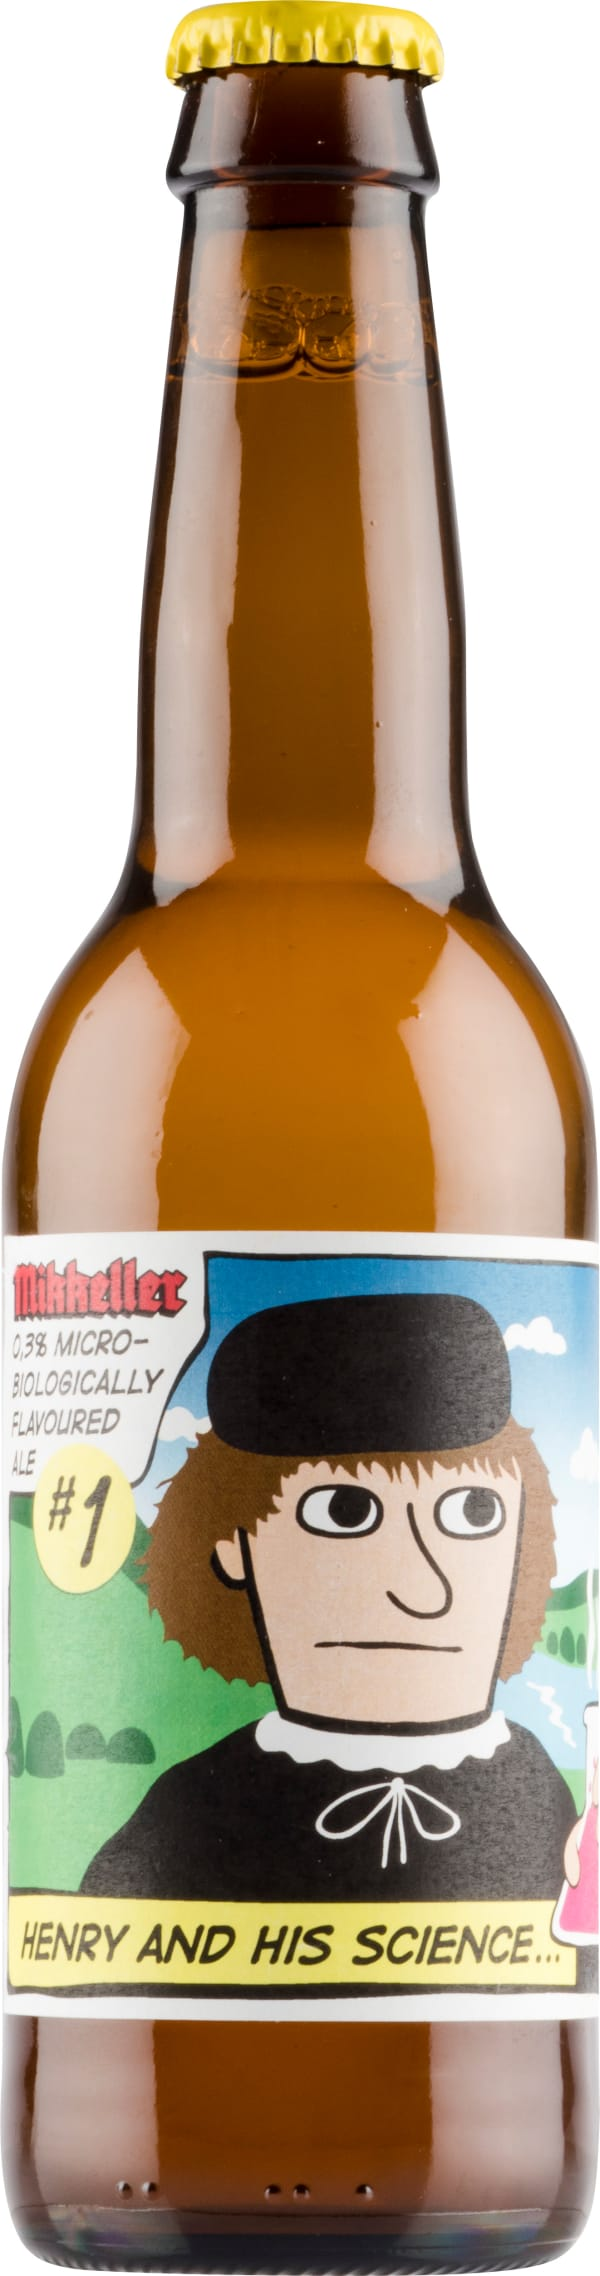 Mikkeller Henry and His Science